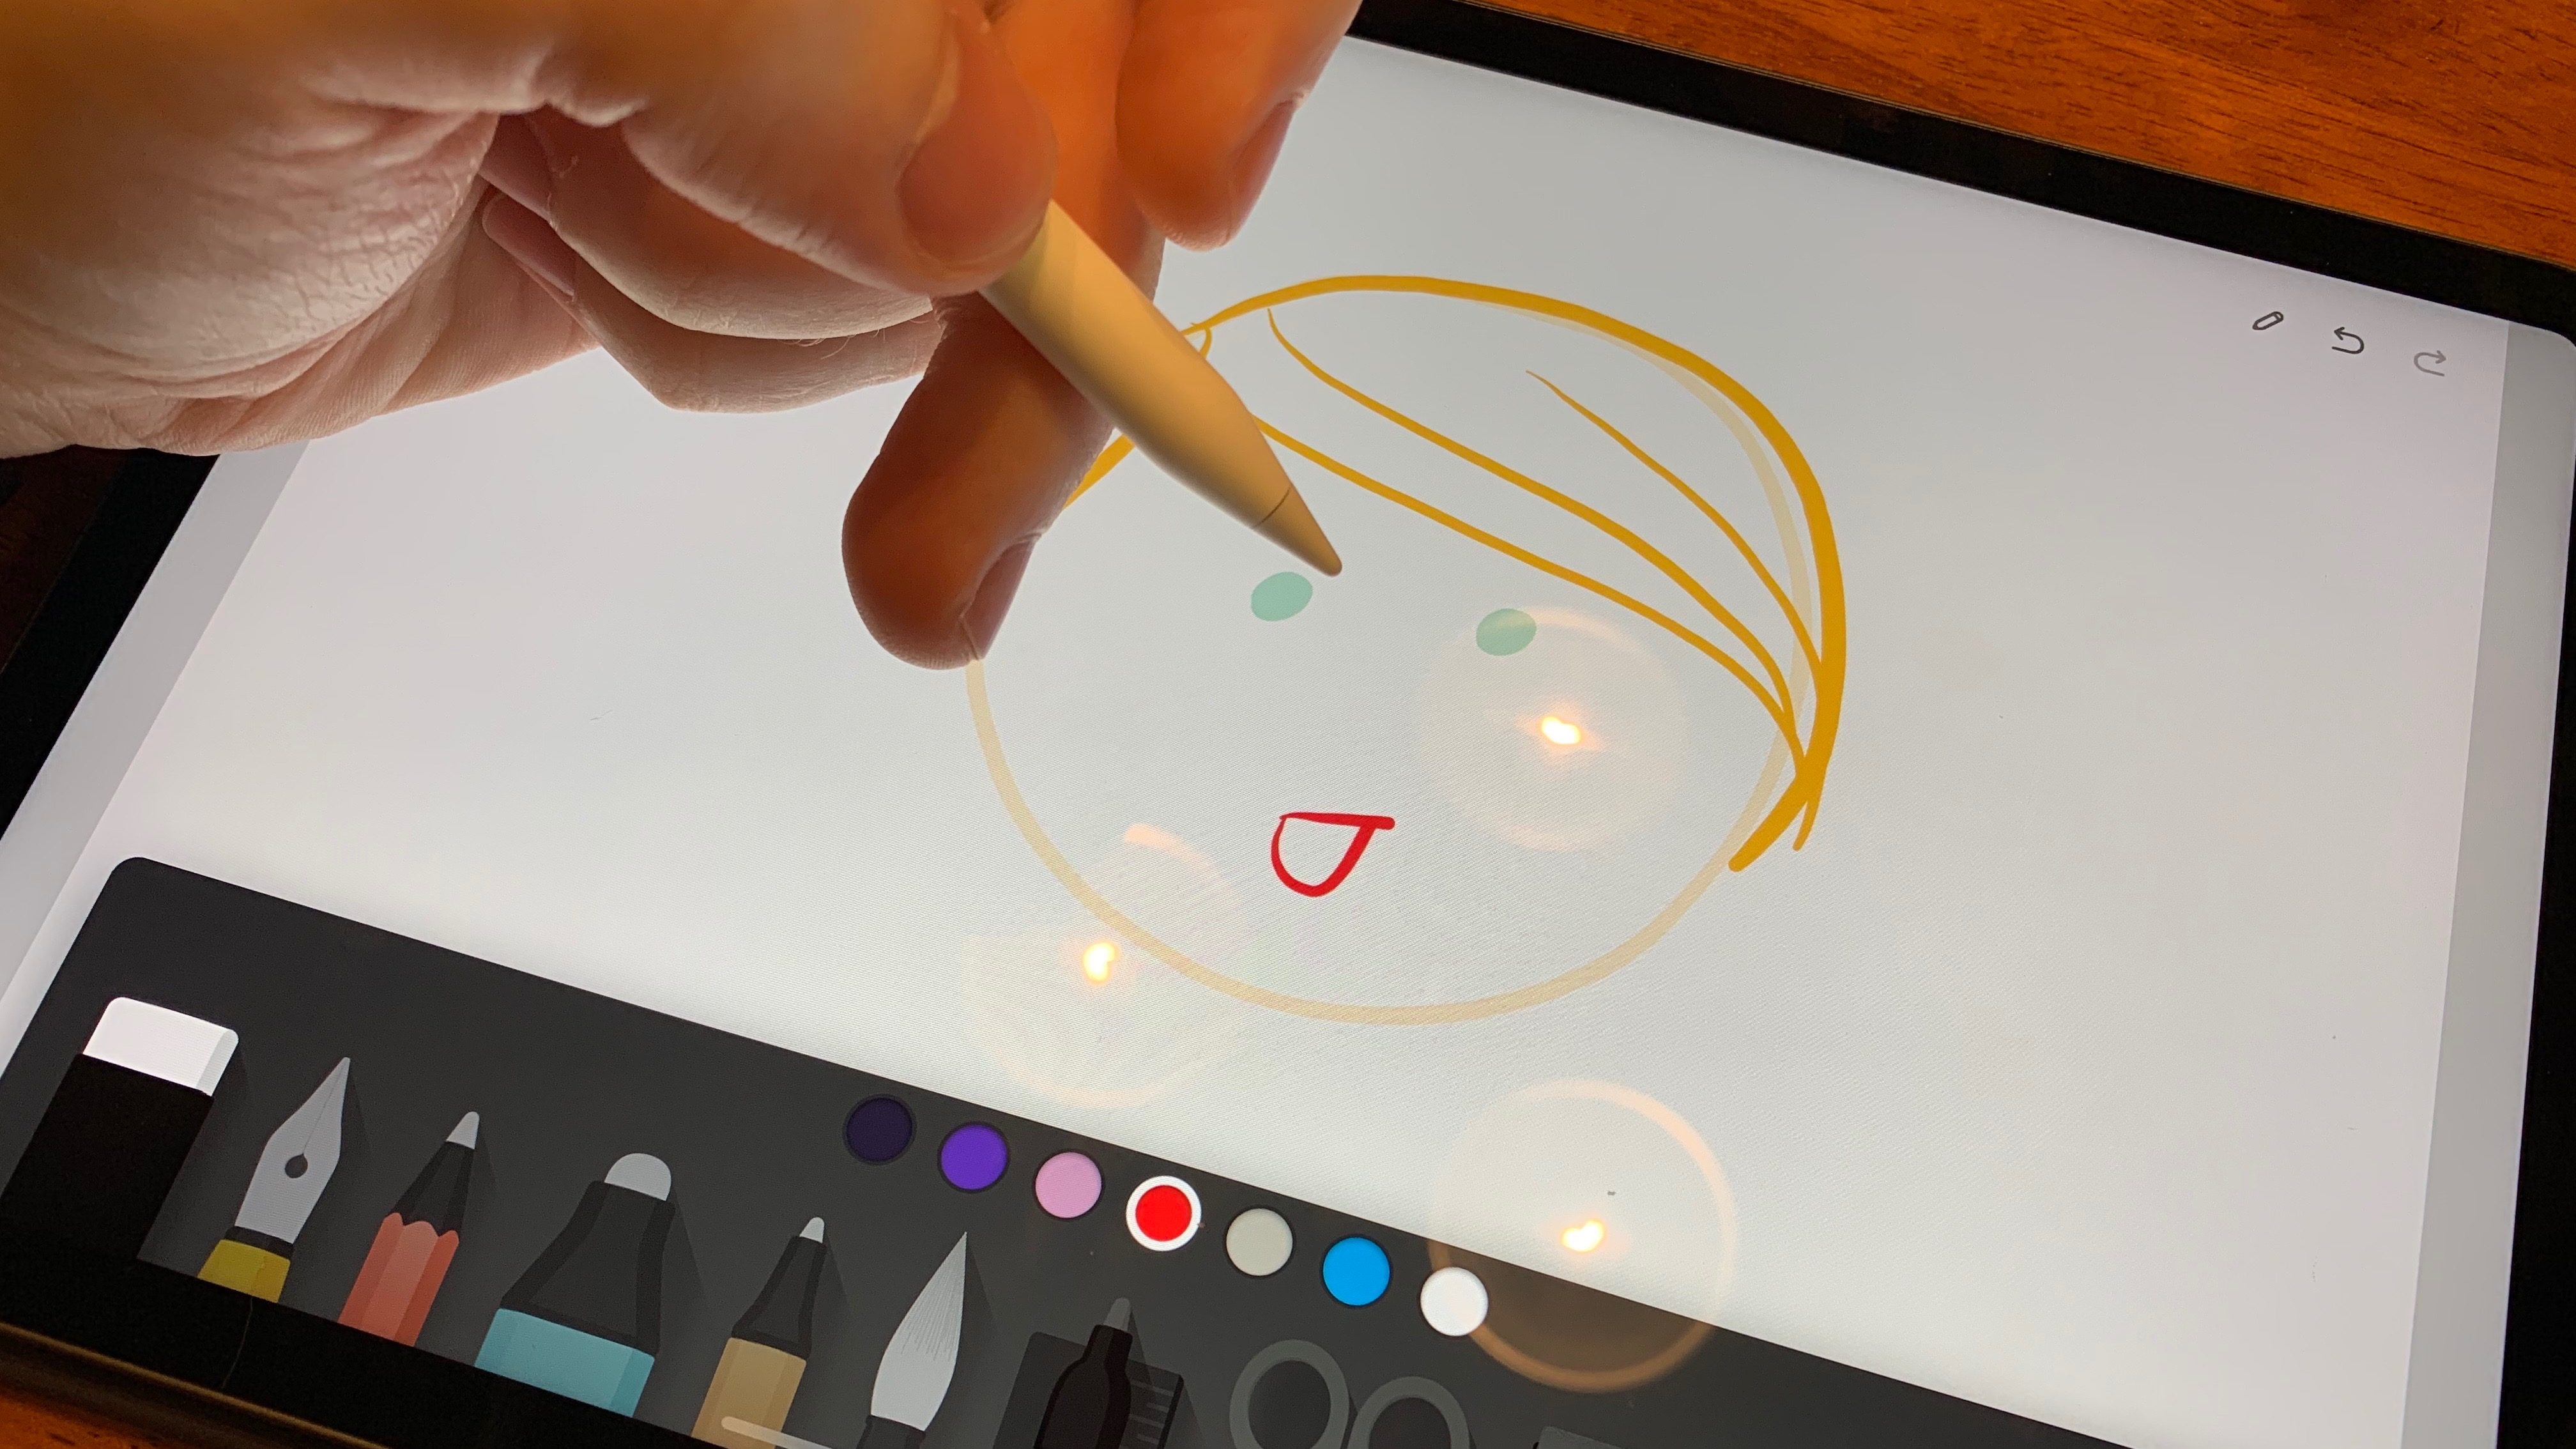 iPad sketching app 'Paper' updated with second-gen Apple Pencil support